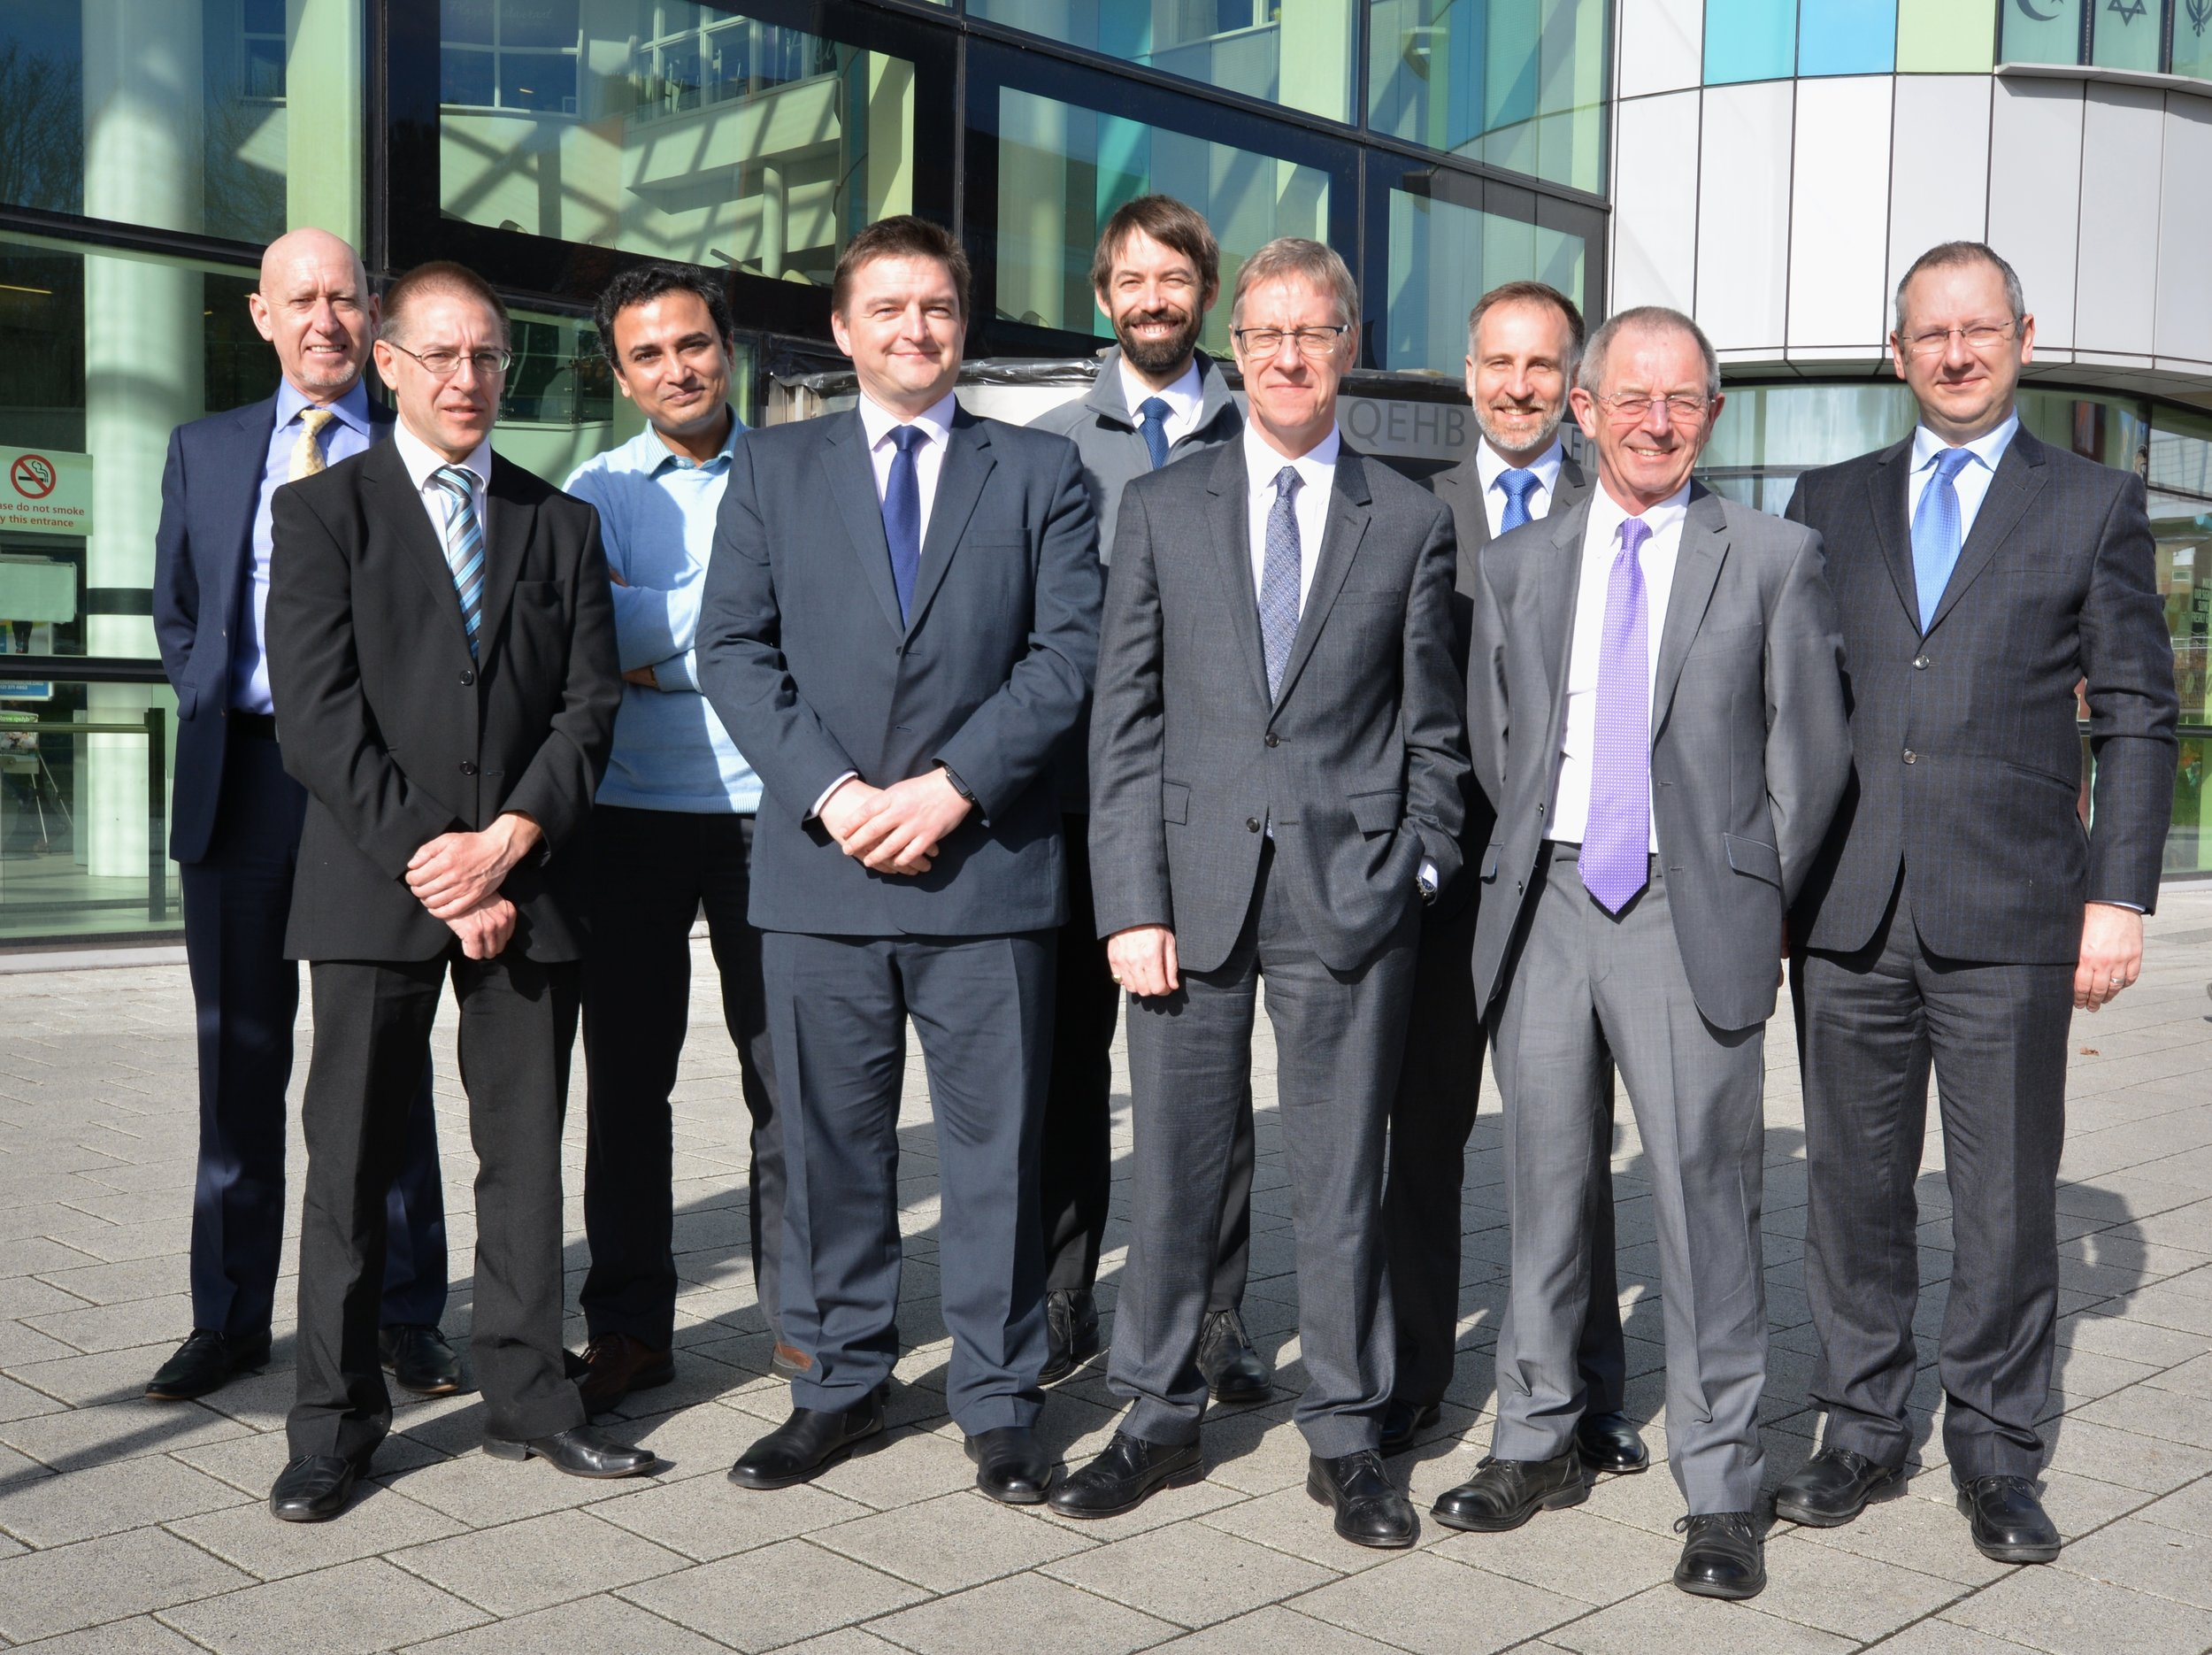 From Left to Right: Alan Lonie, Programme Manager, Insignia Medical Systems; Ian Wilson, PACS Manager UHB; Pankaj Das, UHB Project Manager; Richard Dormer, Managing Director, Insignia Medical Systems; Barnaby Waters, UHB Imaging Technical Lead; Paul Brettle, Deputy Director of Operations, Division A, UHB.; Erik Dege, Operations Manager, Insignia Medical Systems; Richard Tyler, Project Manager, Insignia Medical Systems; Jon Hall, Chief Technical Officer, Insignia Medical Systems